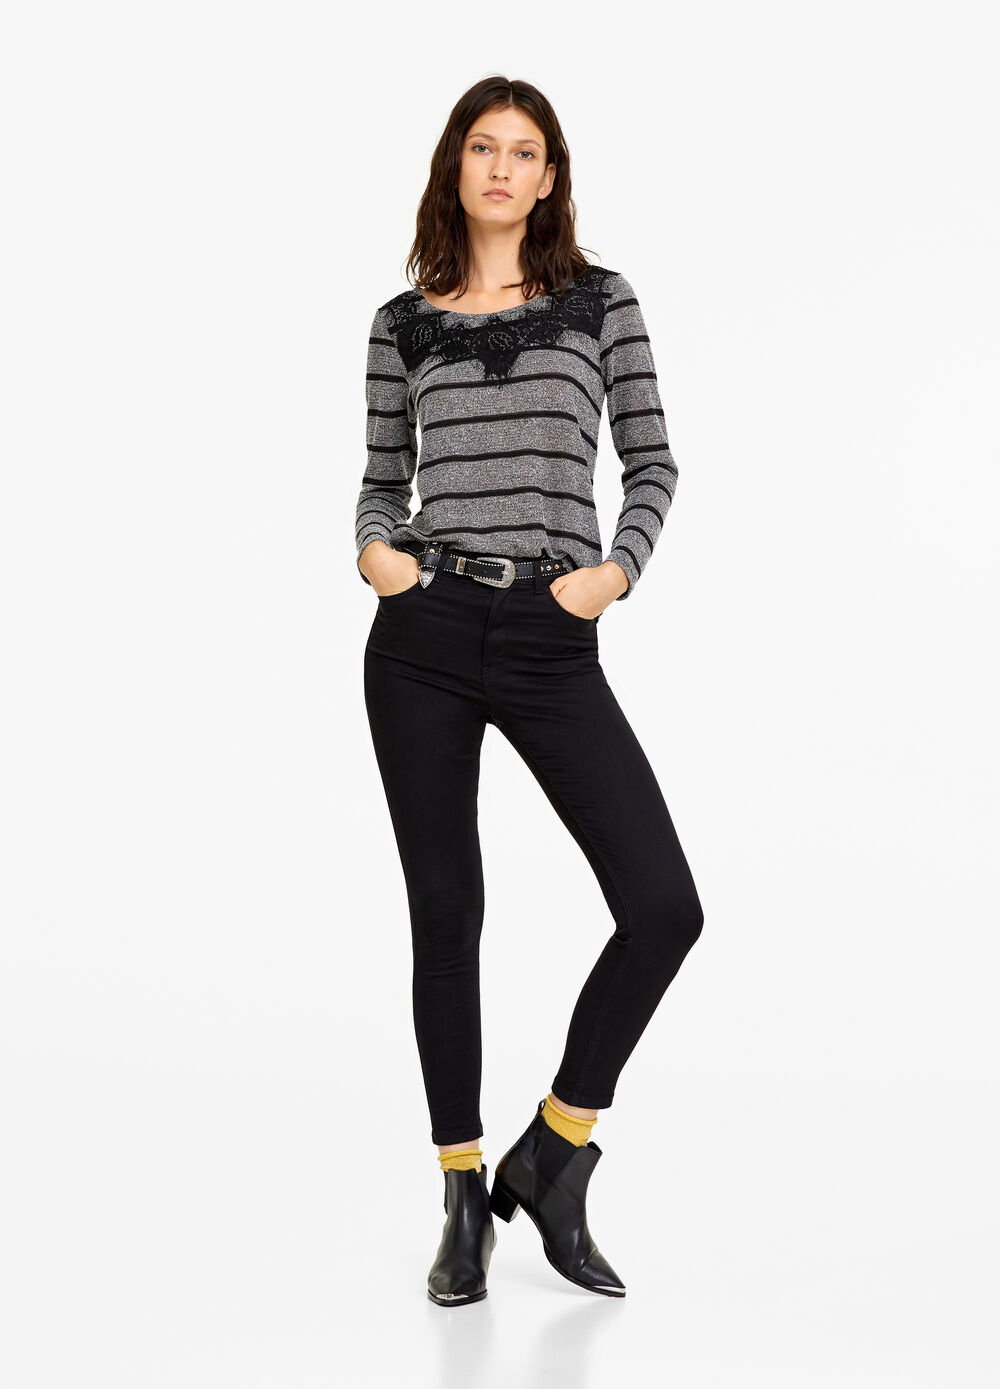 Striped T-shirt with lace insert